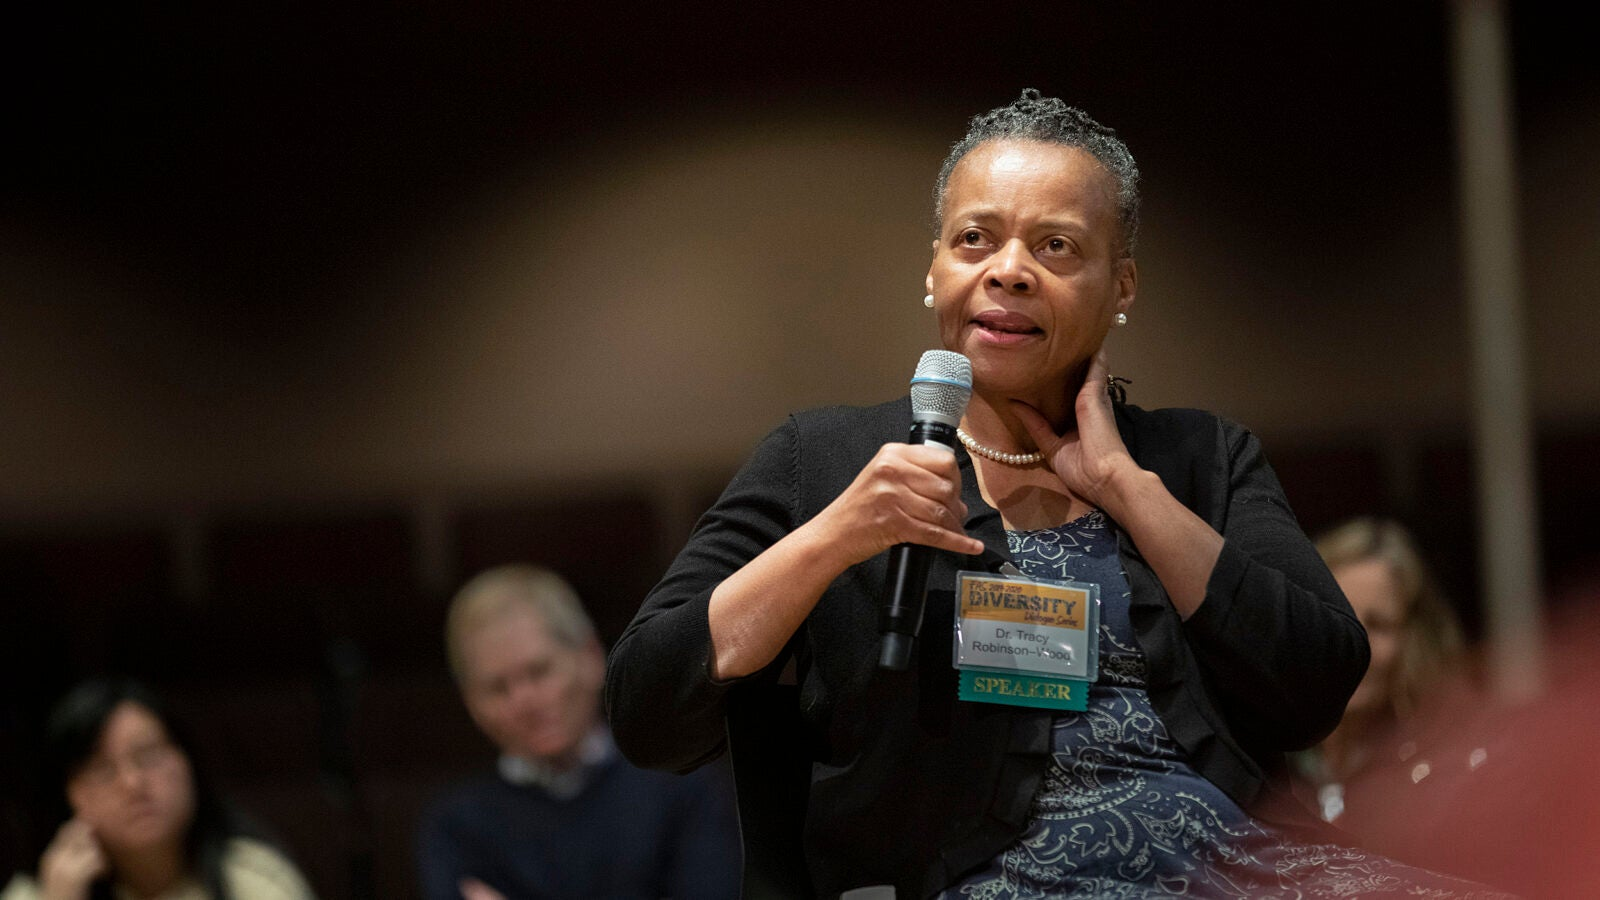 Tracy Robinson-Wood speaking on a microphone